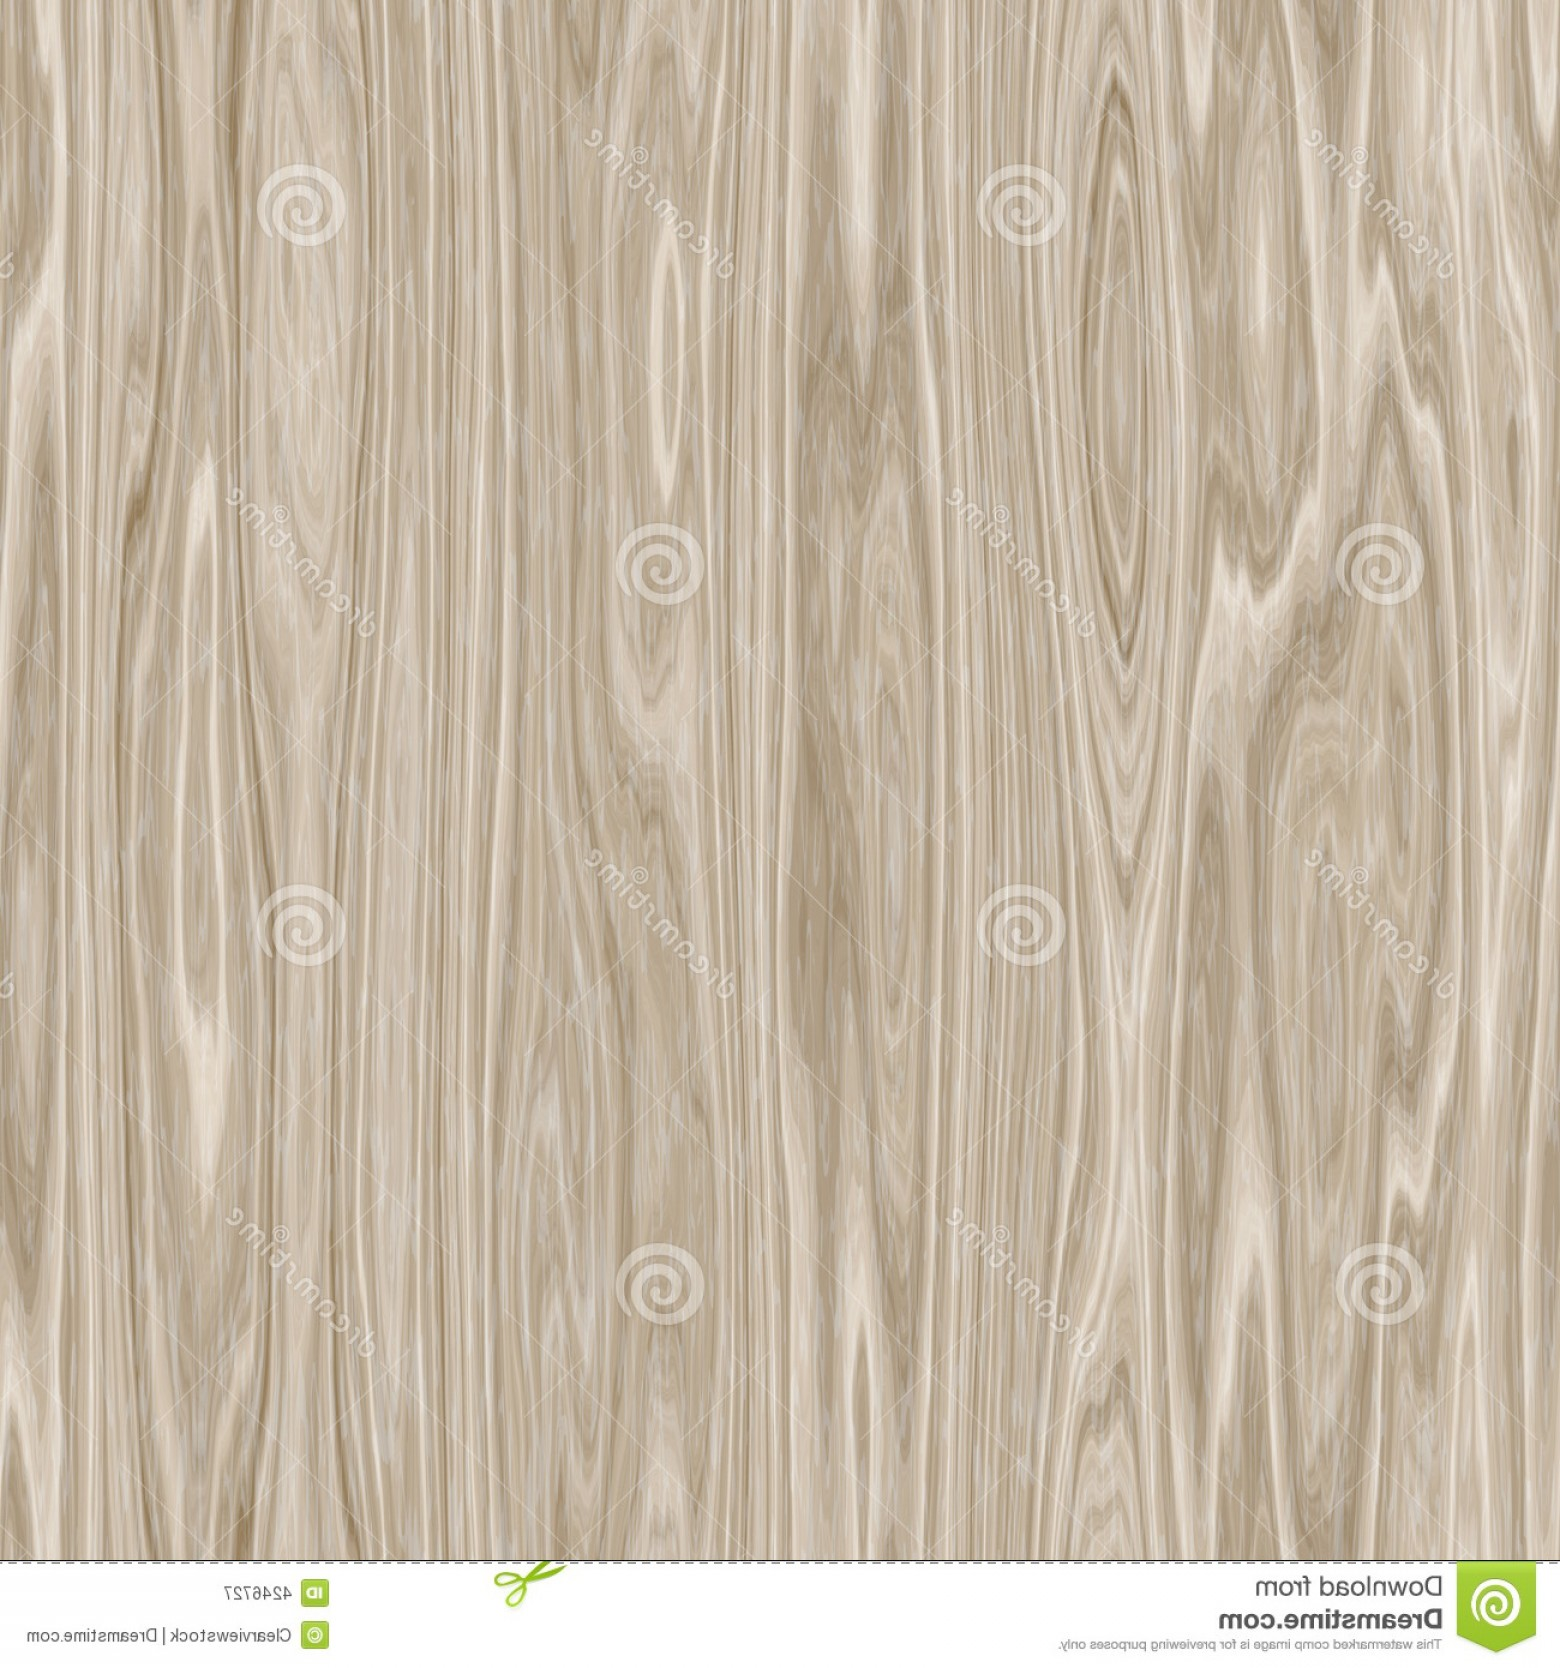 Wood Grain Texture Vector: Royalty Free Stock Photography Wood Grain Background Texture Image